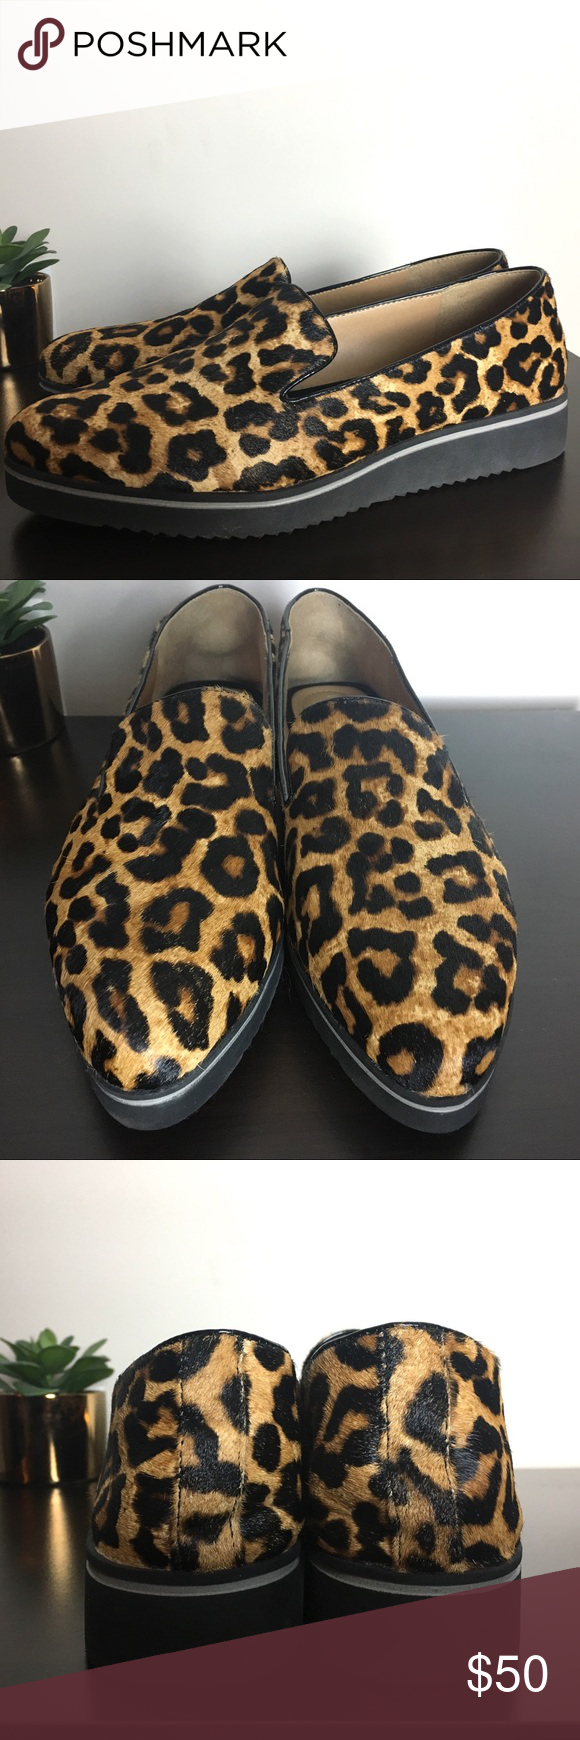 cd19fe0a3cb6 Spotted while shopping on Poshmark: Franco Sarto Fabrina Leopard Calf Hair  Loafers! #poshmark #fashion #shopping #style #Franco Sarto #Shoes